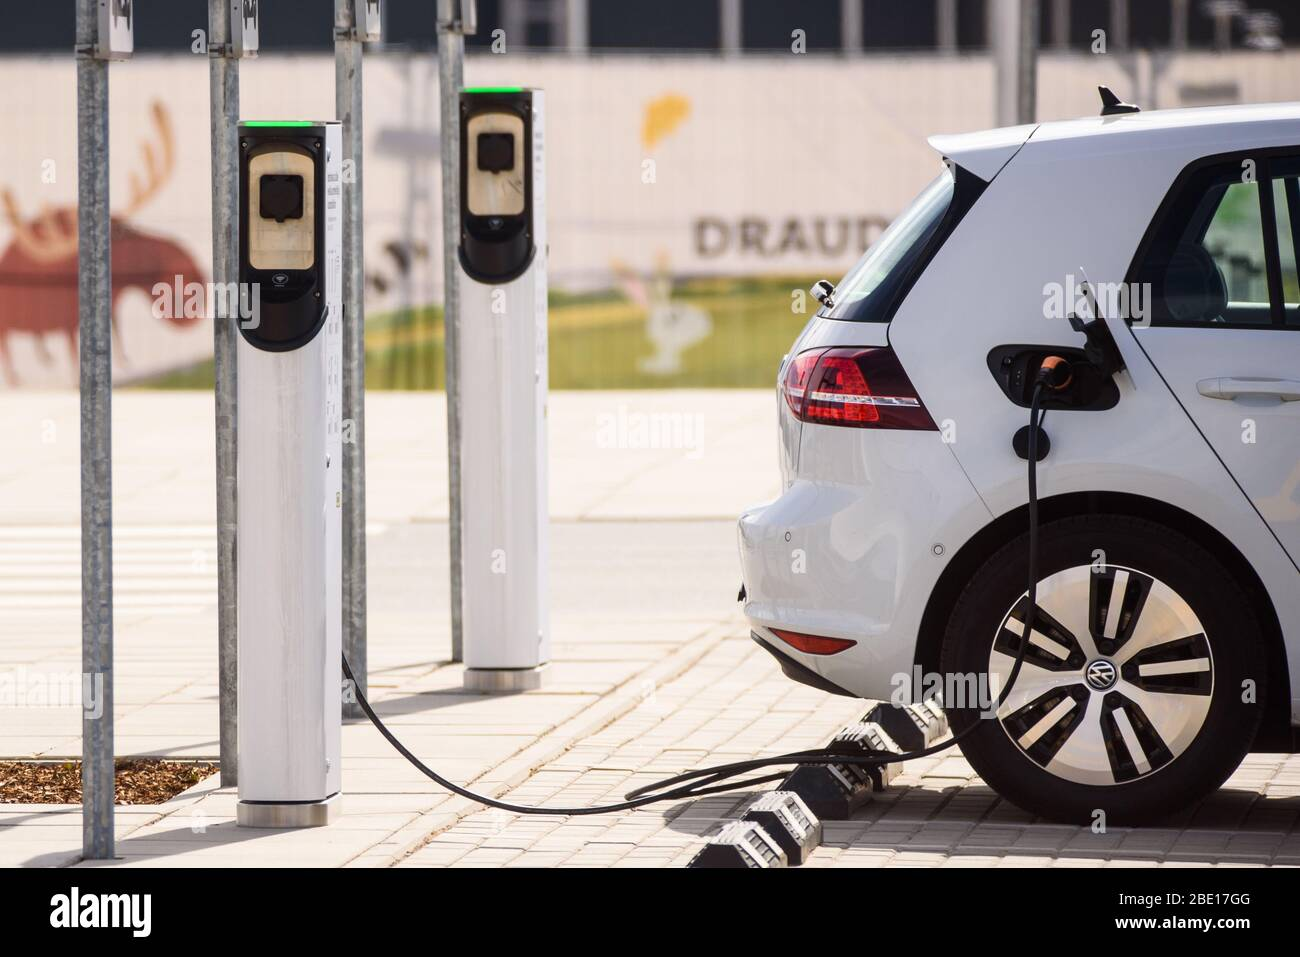 RIGA, LATVIA. 10th April, 2020. Electrical Vehicle Charging Station near IKEA store. Stock Photo